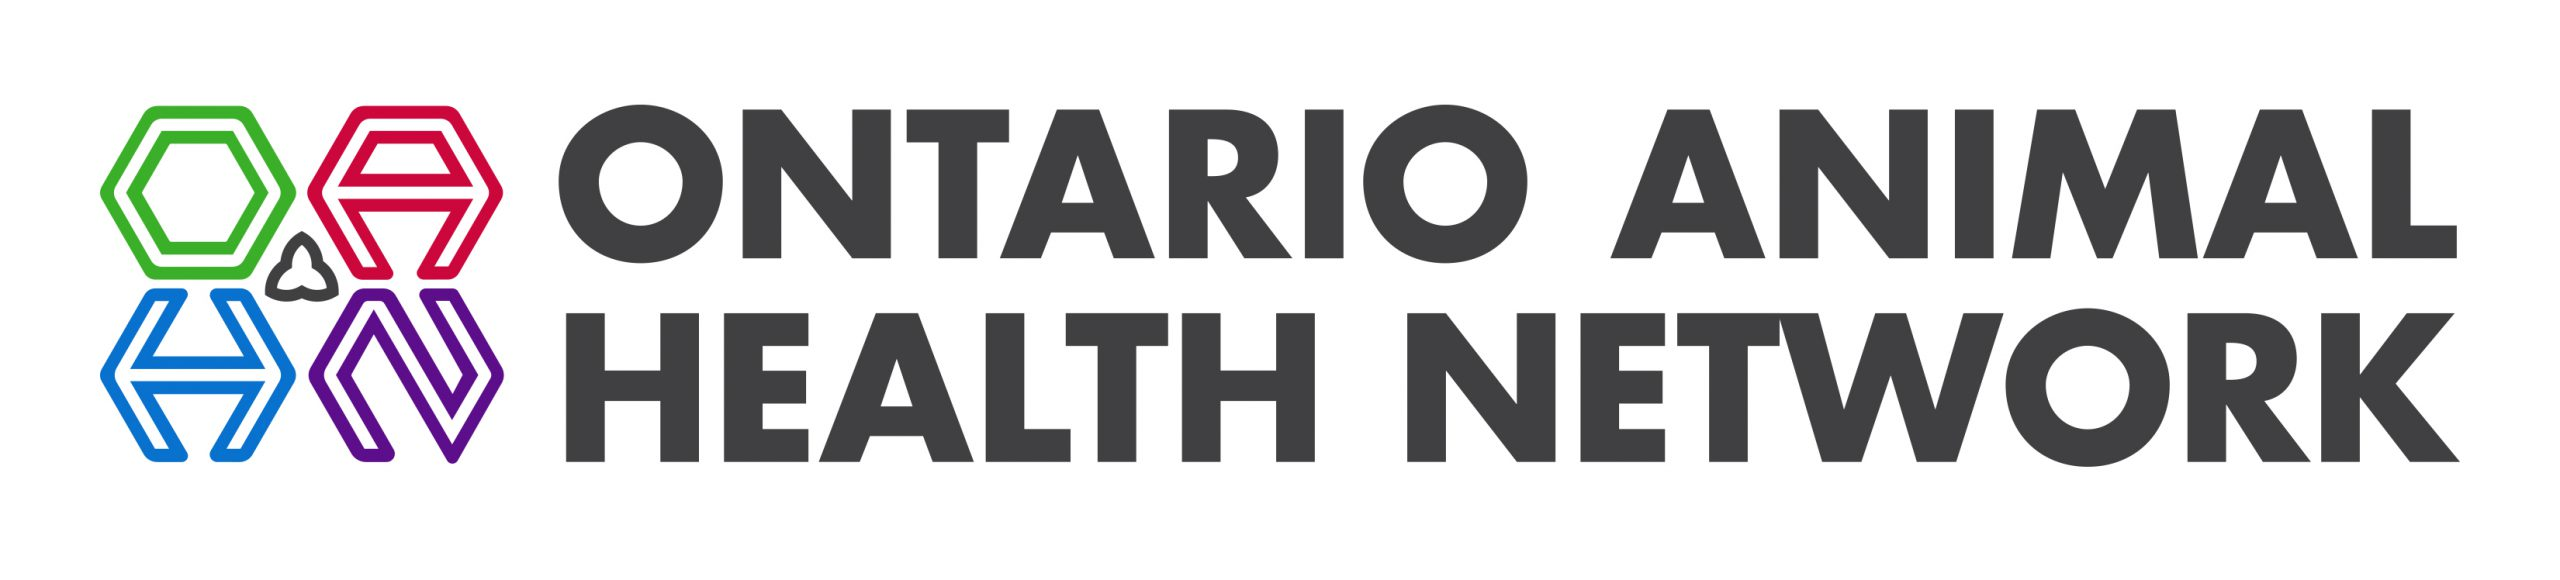 Ontario Animal Health Network